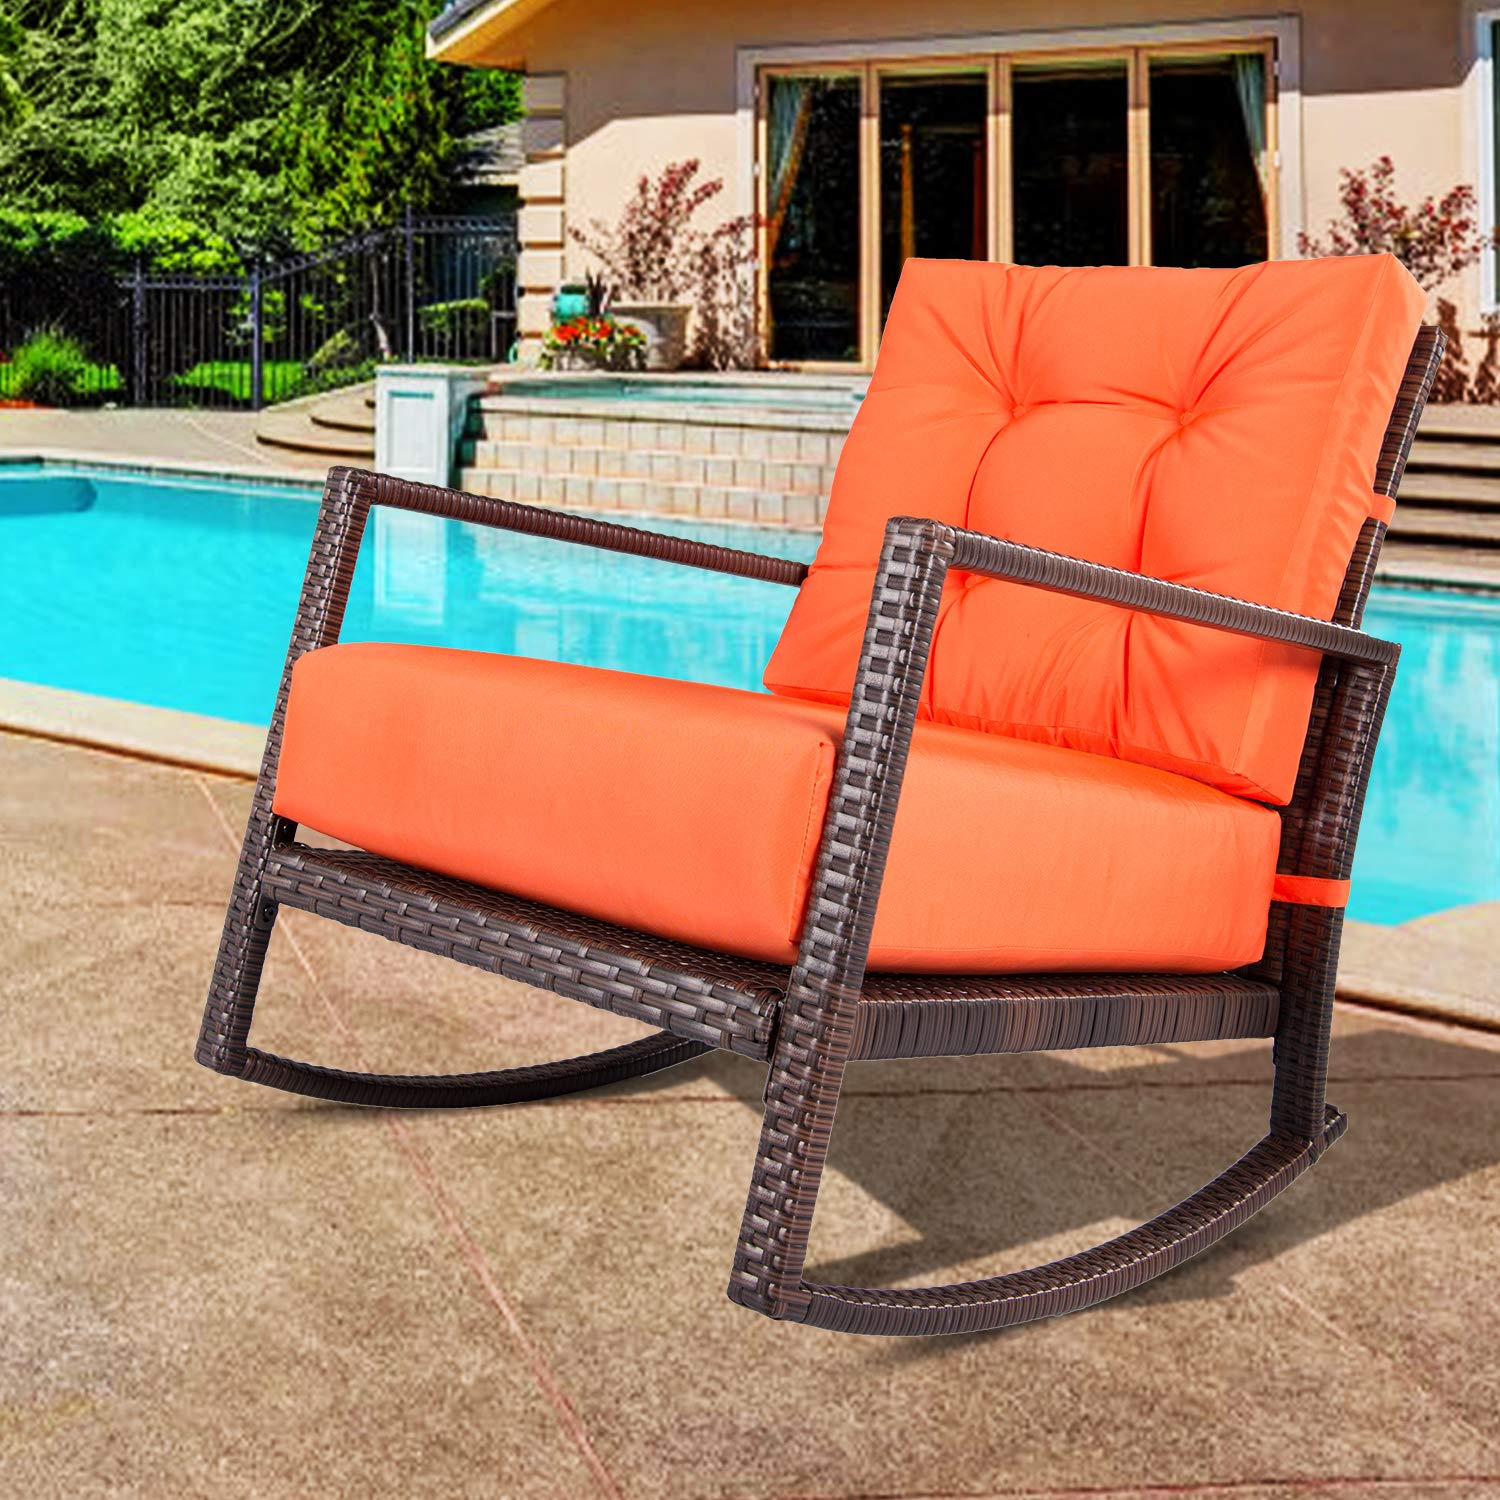 Outroad Rocking Wicker Chair Orange Lounge Chair with Thick Cushion for Outdoor, Porch, Garden, Backyard or Pool by OUTROAD OUTDOOR CAMPING GARDEN PATIO